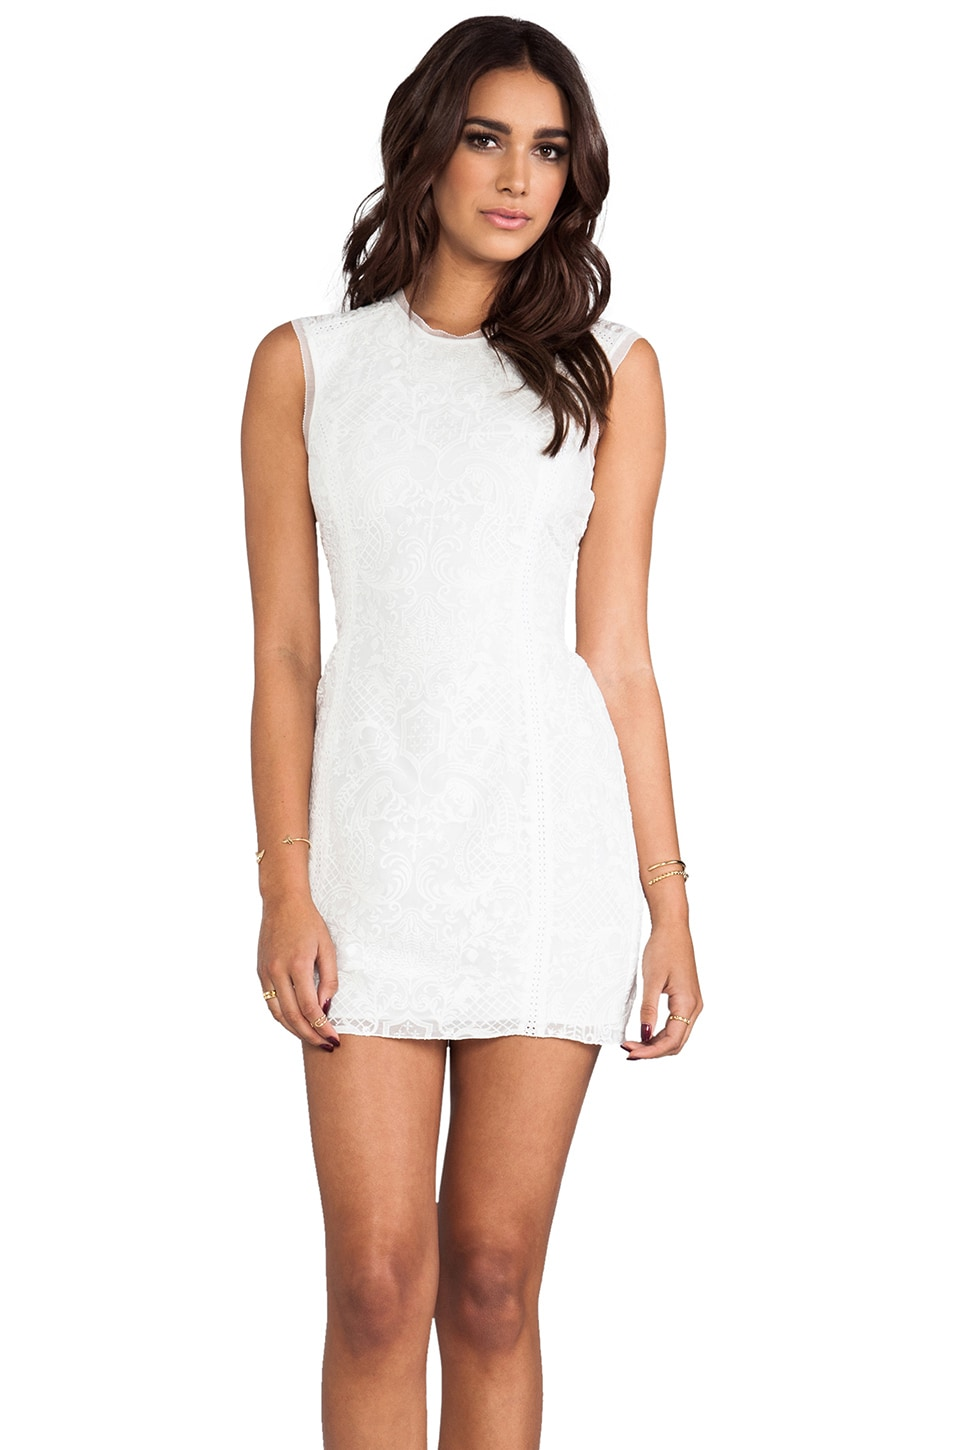 Dolce Vita Allori Dress in White